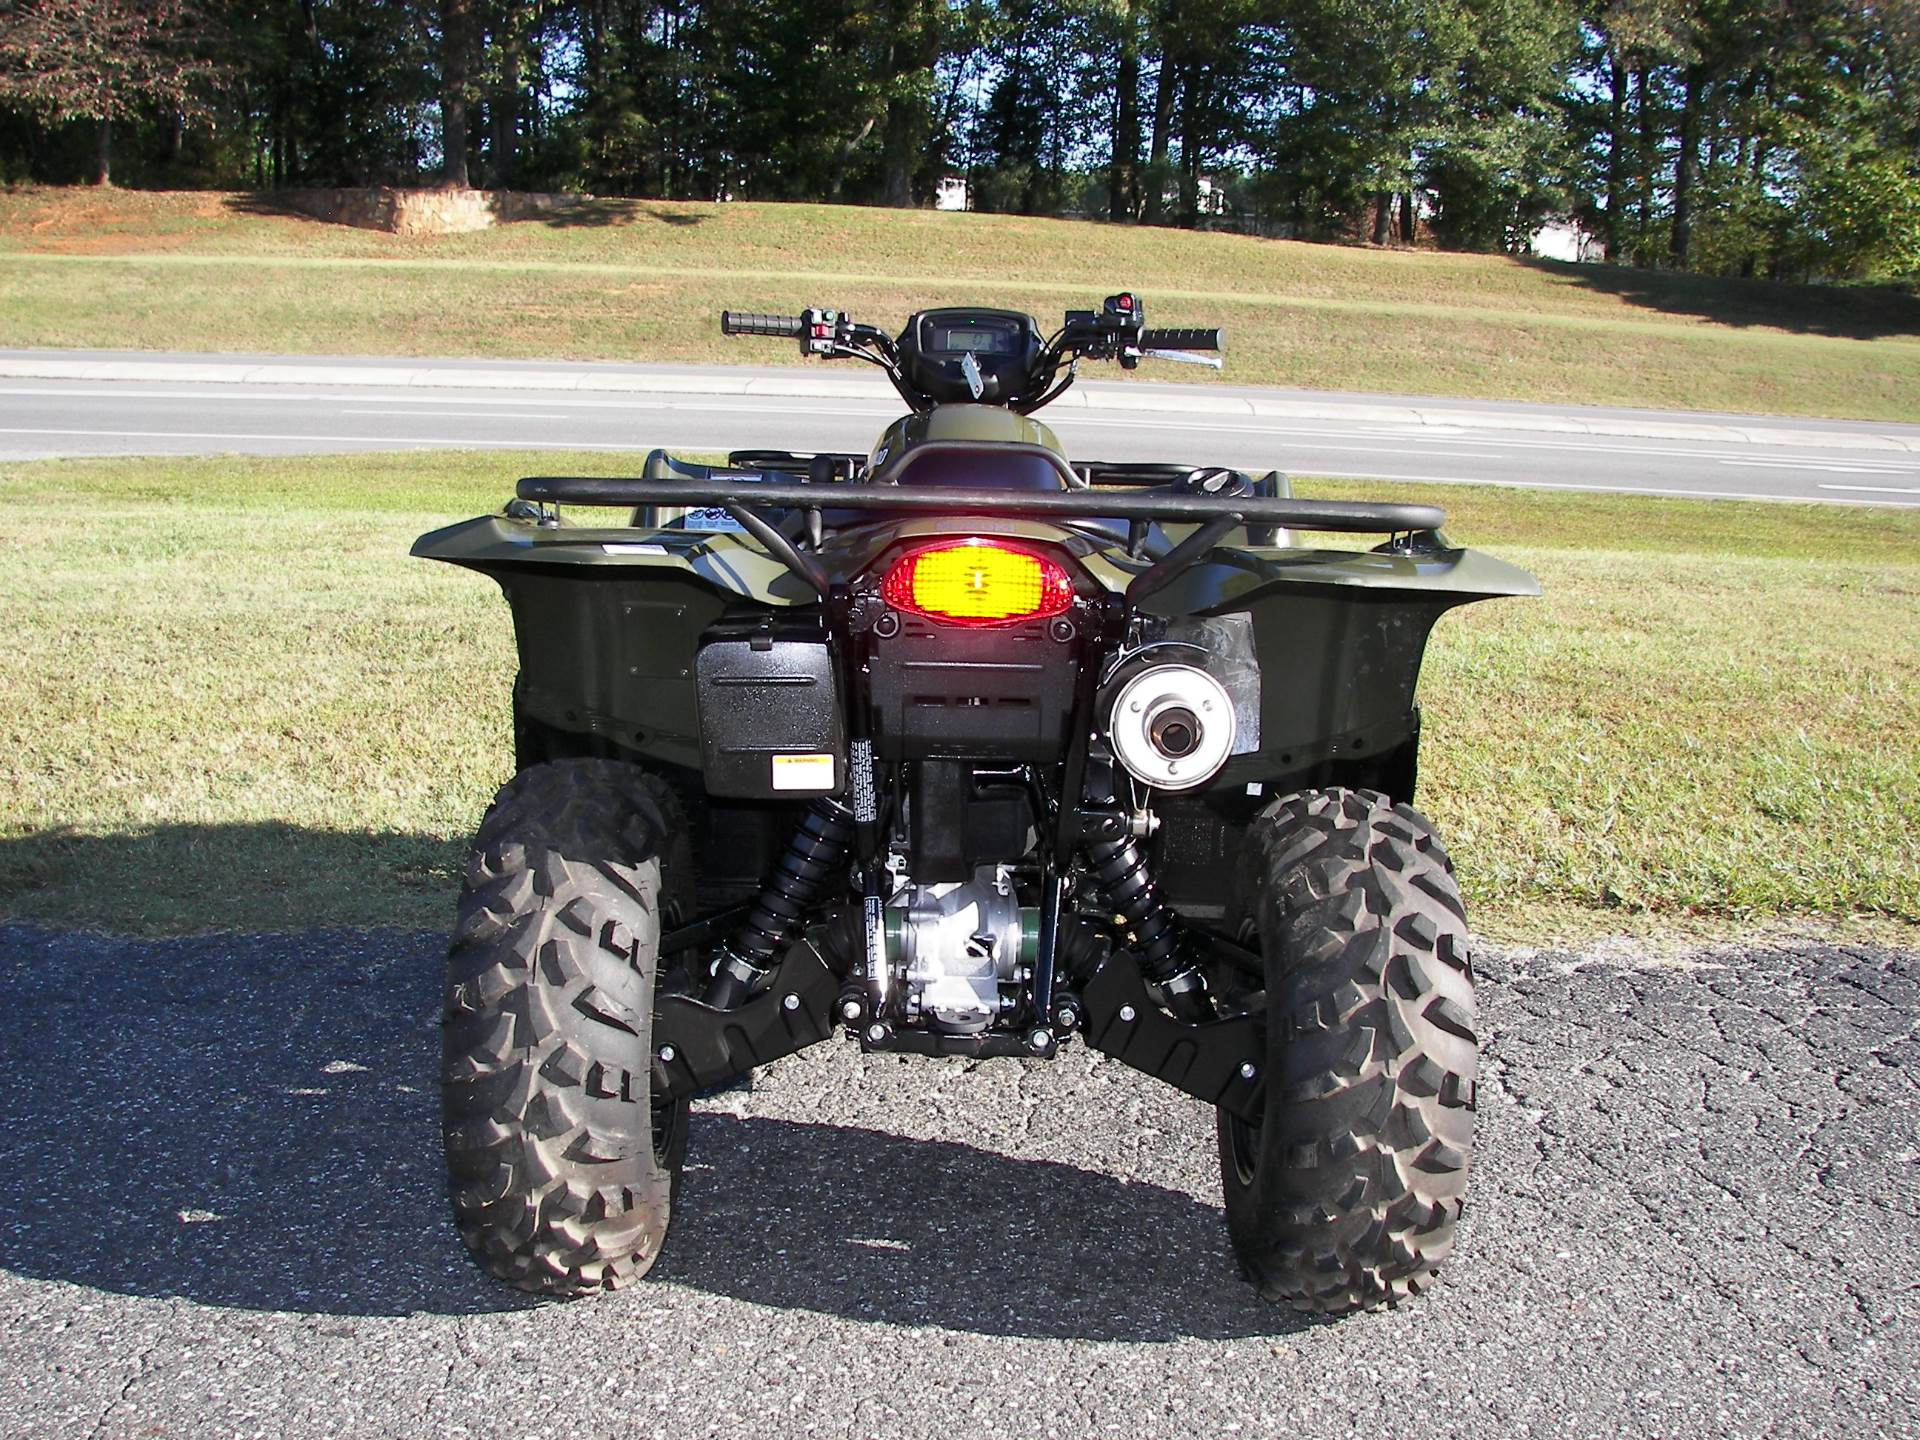 2018 Suzuki KingQuad 750AXi in Shelby, North Carolina - Photo 6